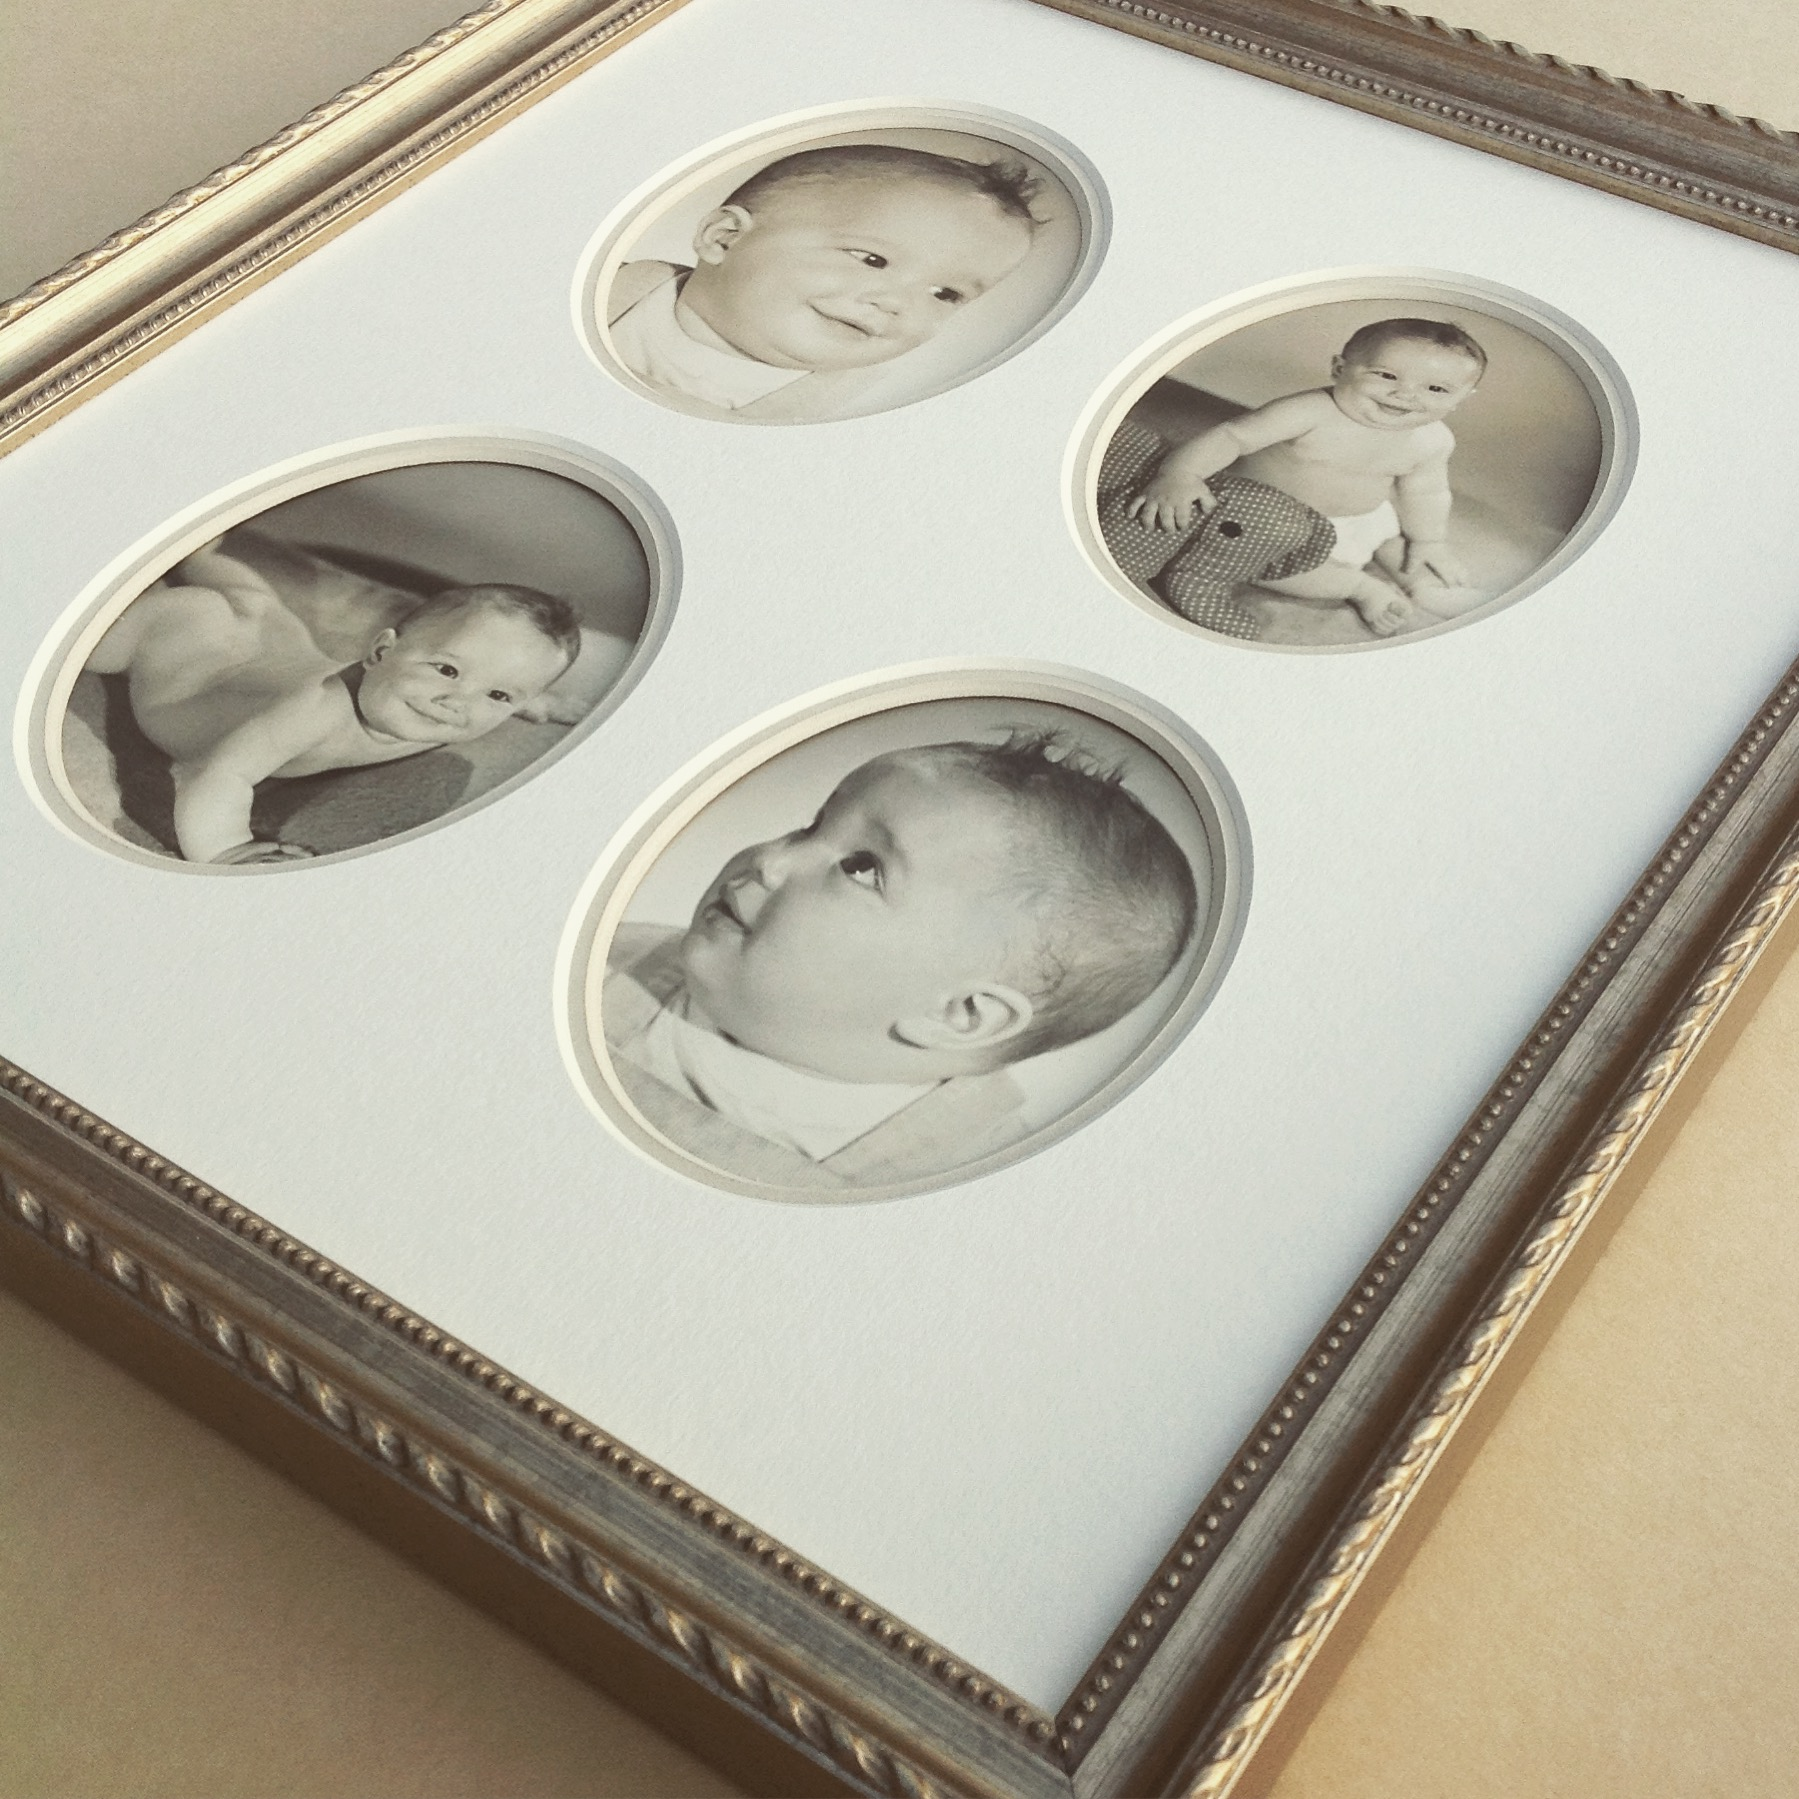 1940's baby photos custom framed